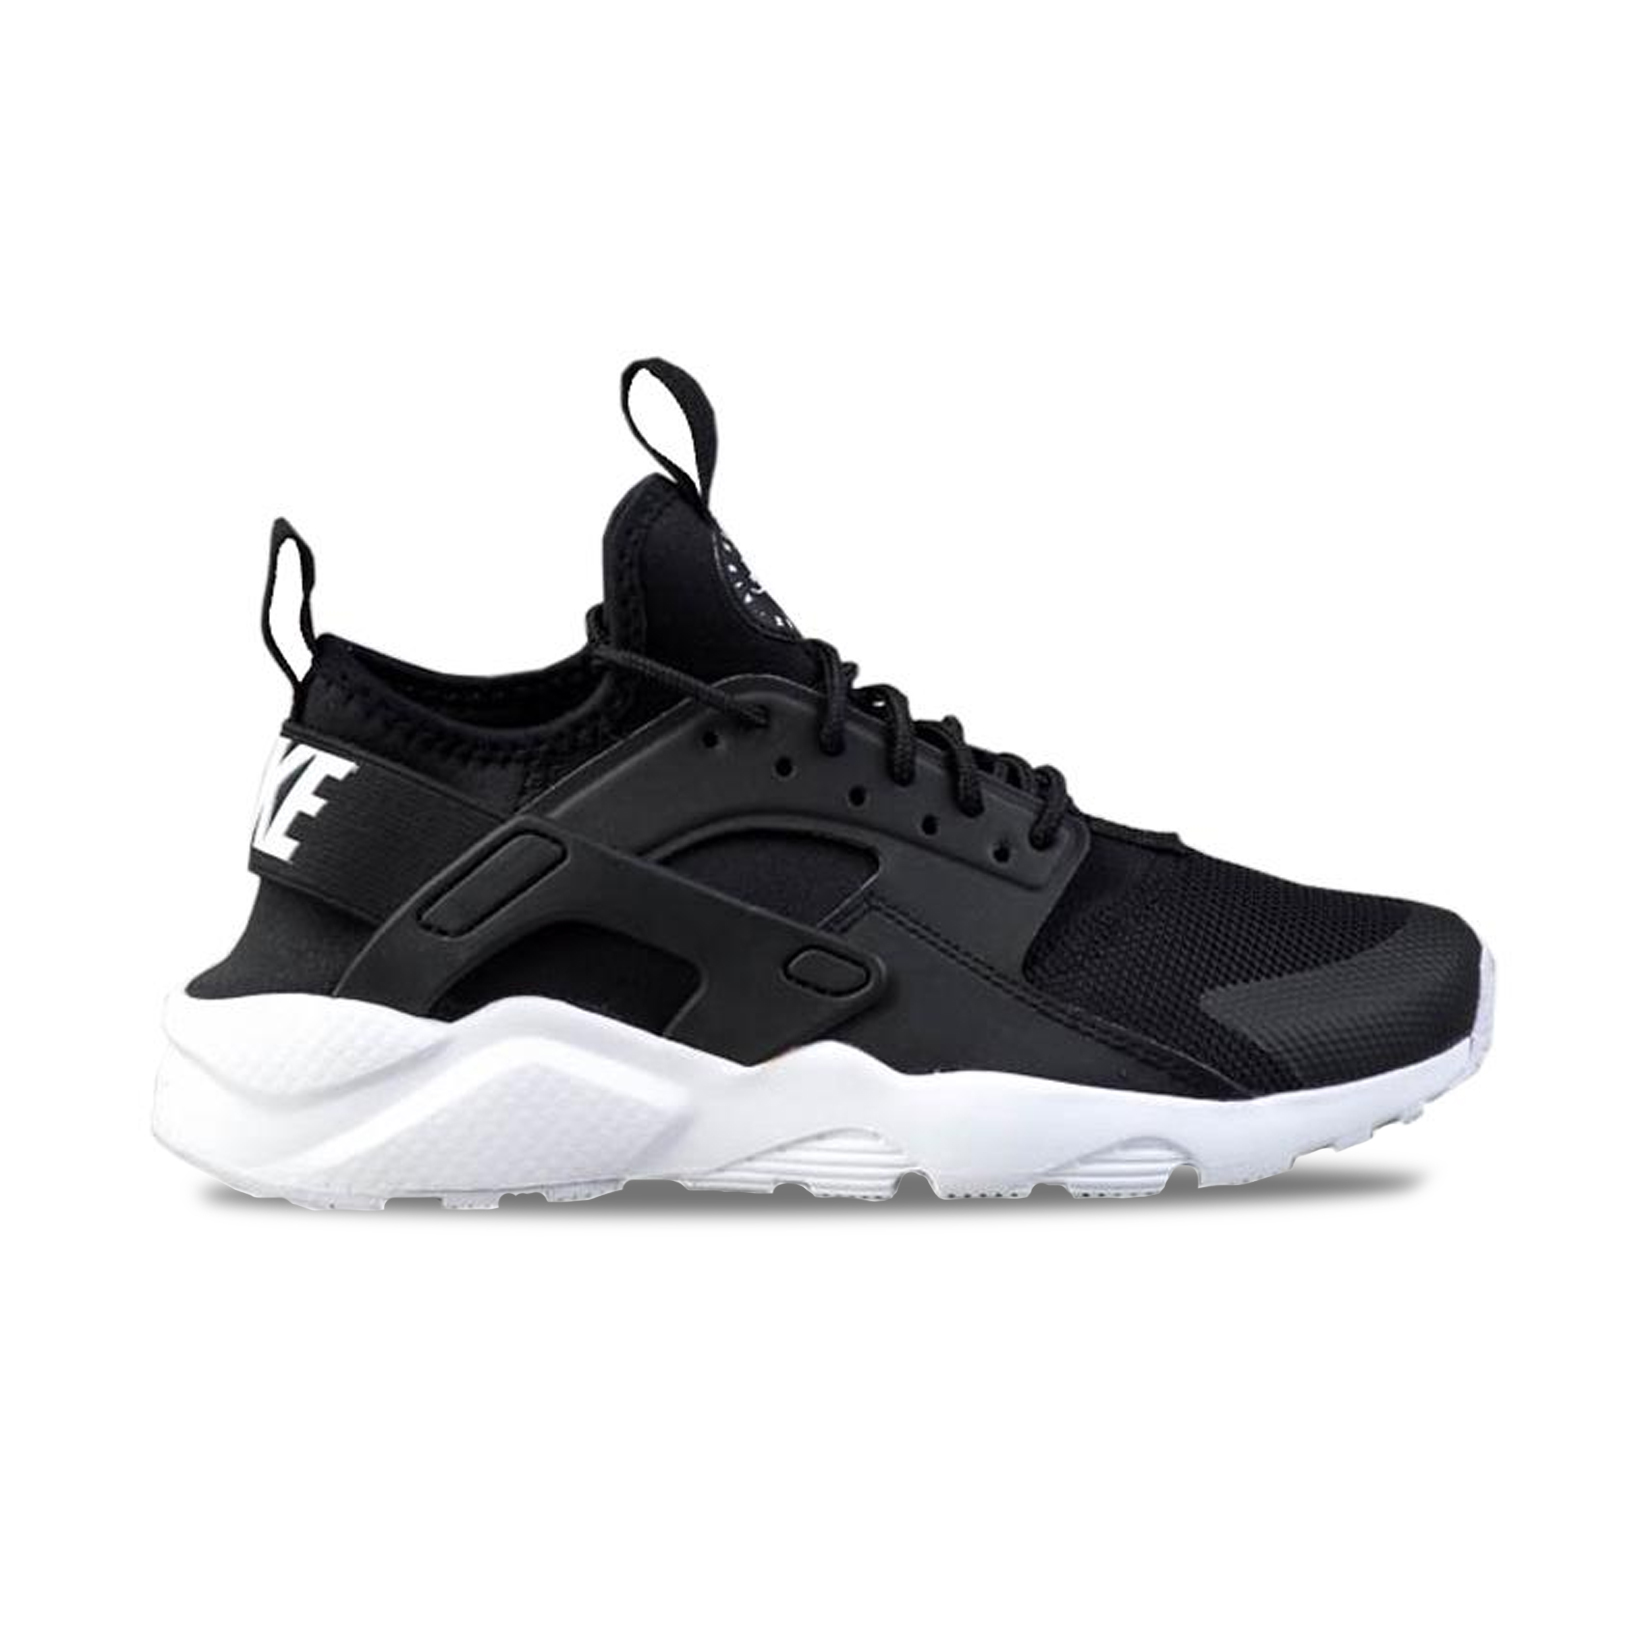 Nike Air Huarache Run Ultra GS Black - White